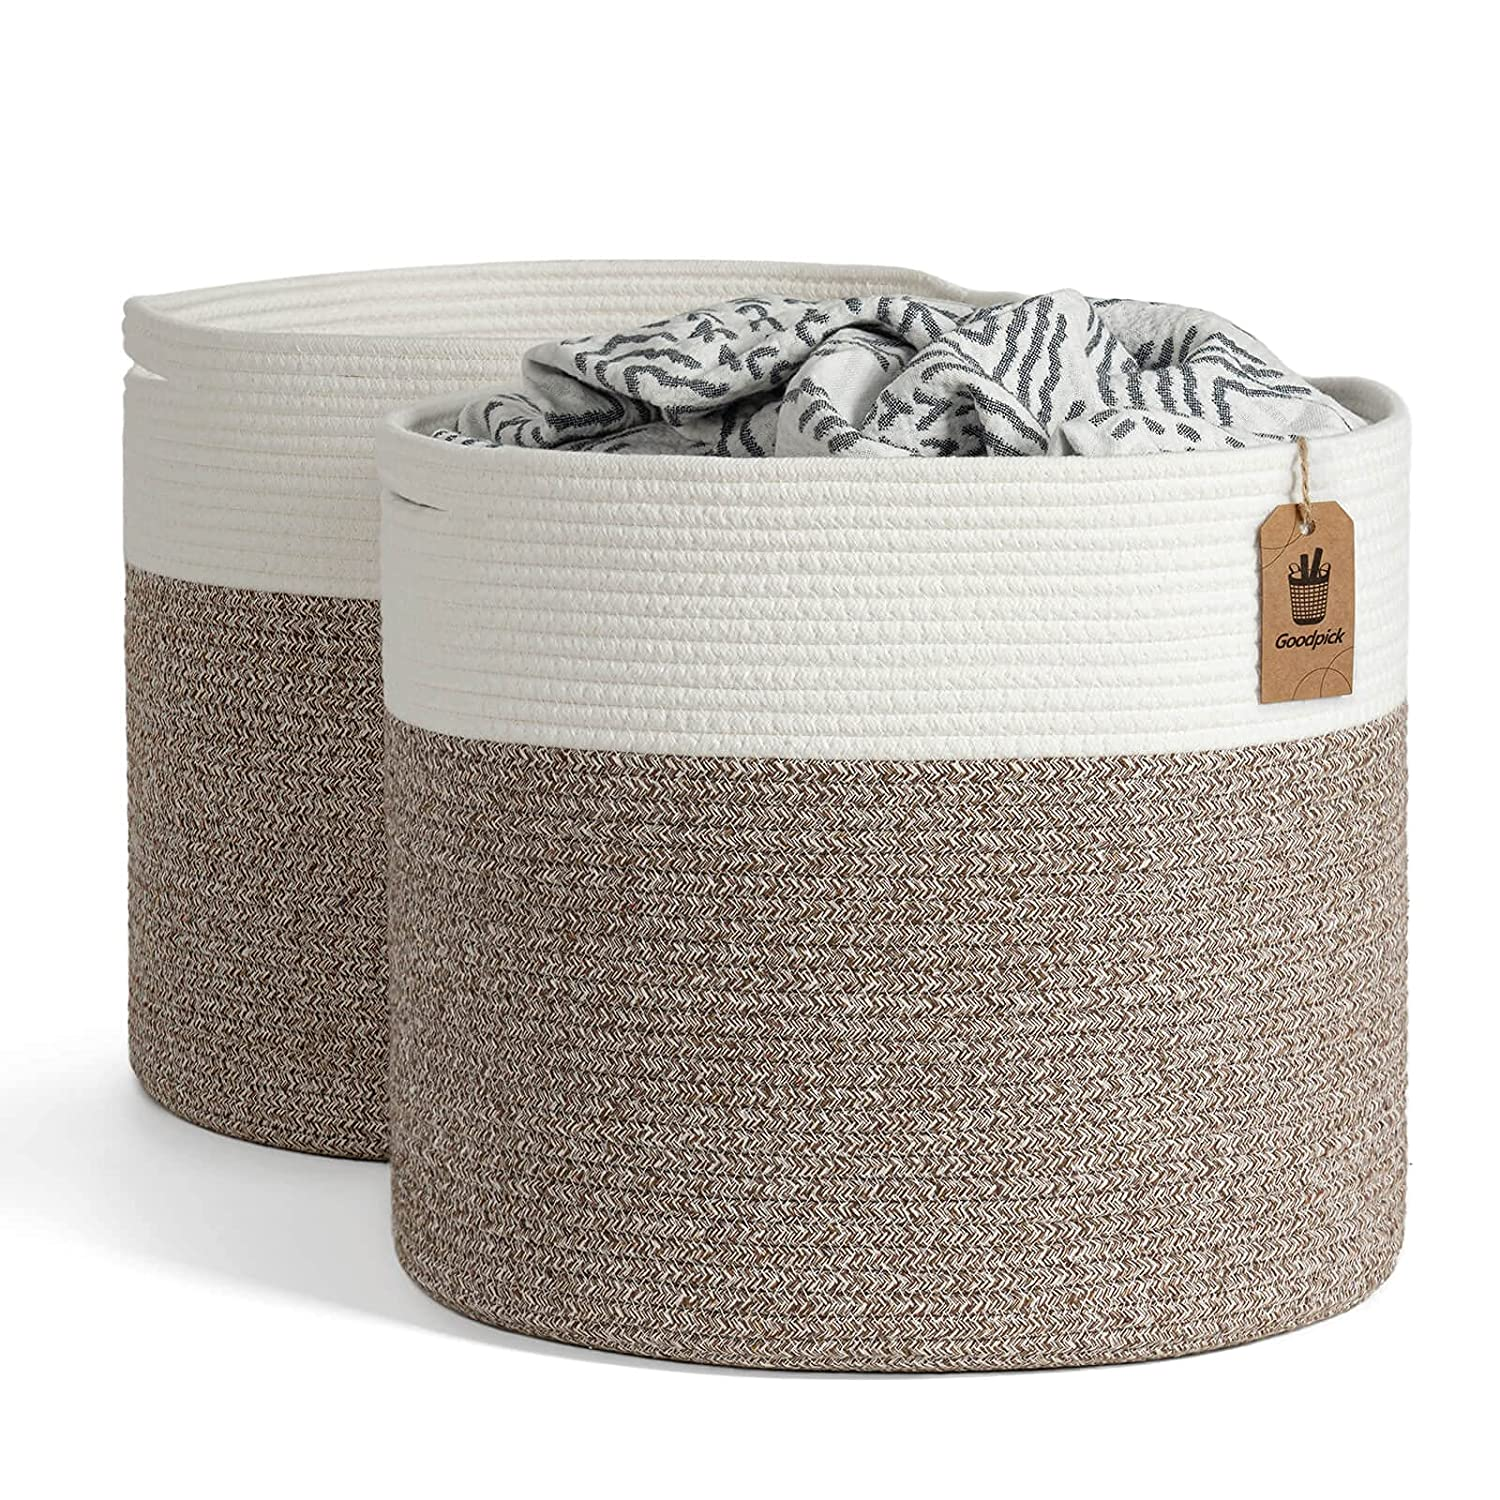 Goodpick 2pack Large Woven Dallas Mall Blanket Round Baskets Ranking TOP16 Laundry Storage